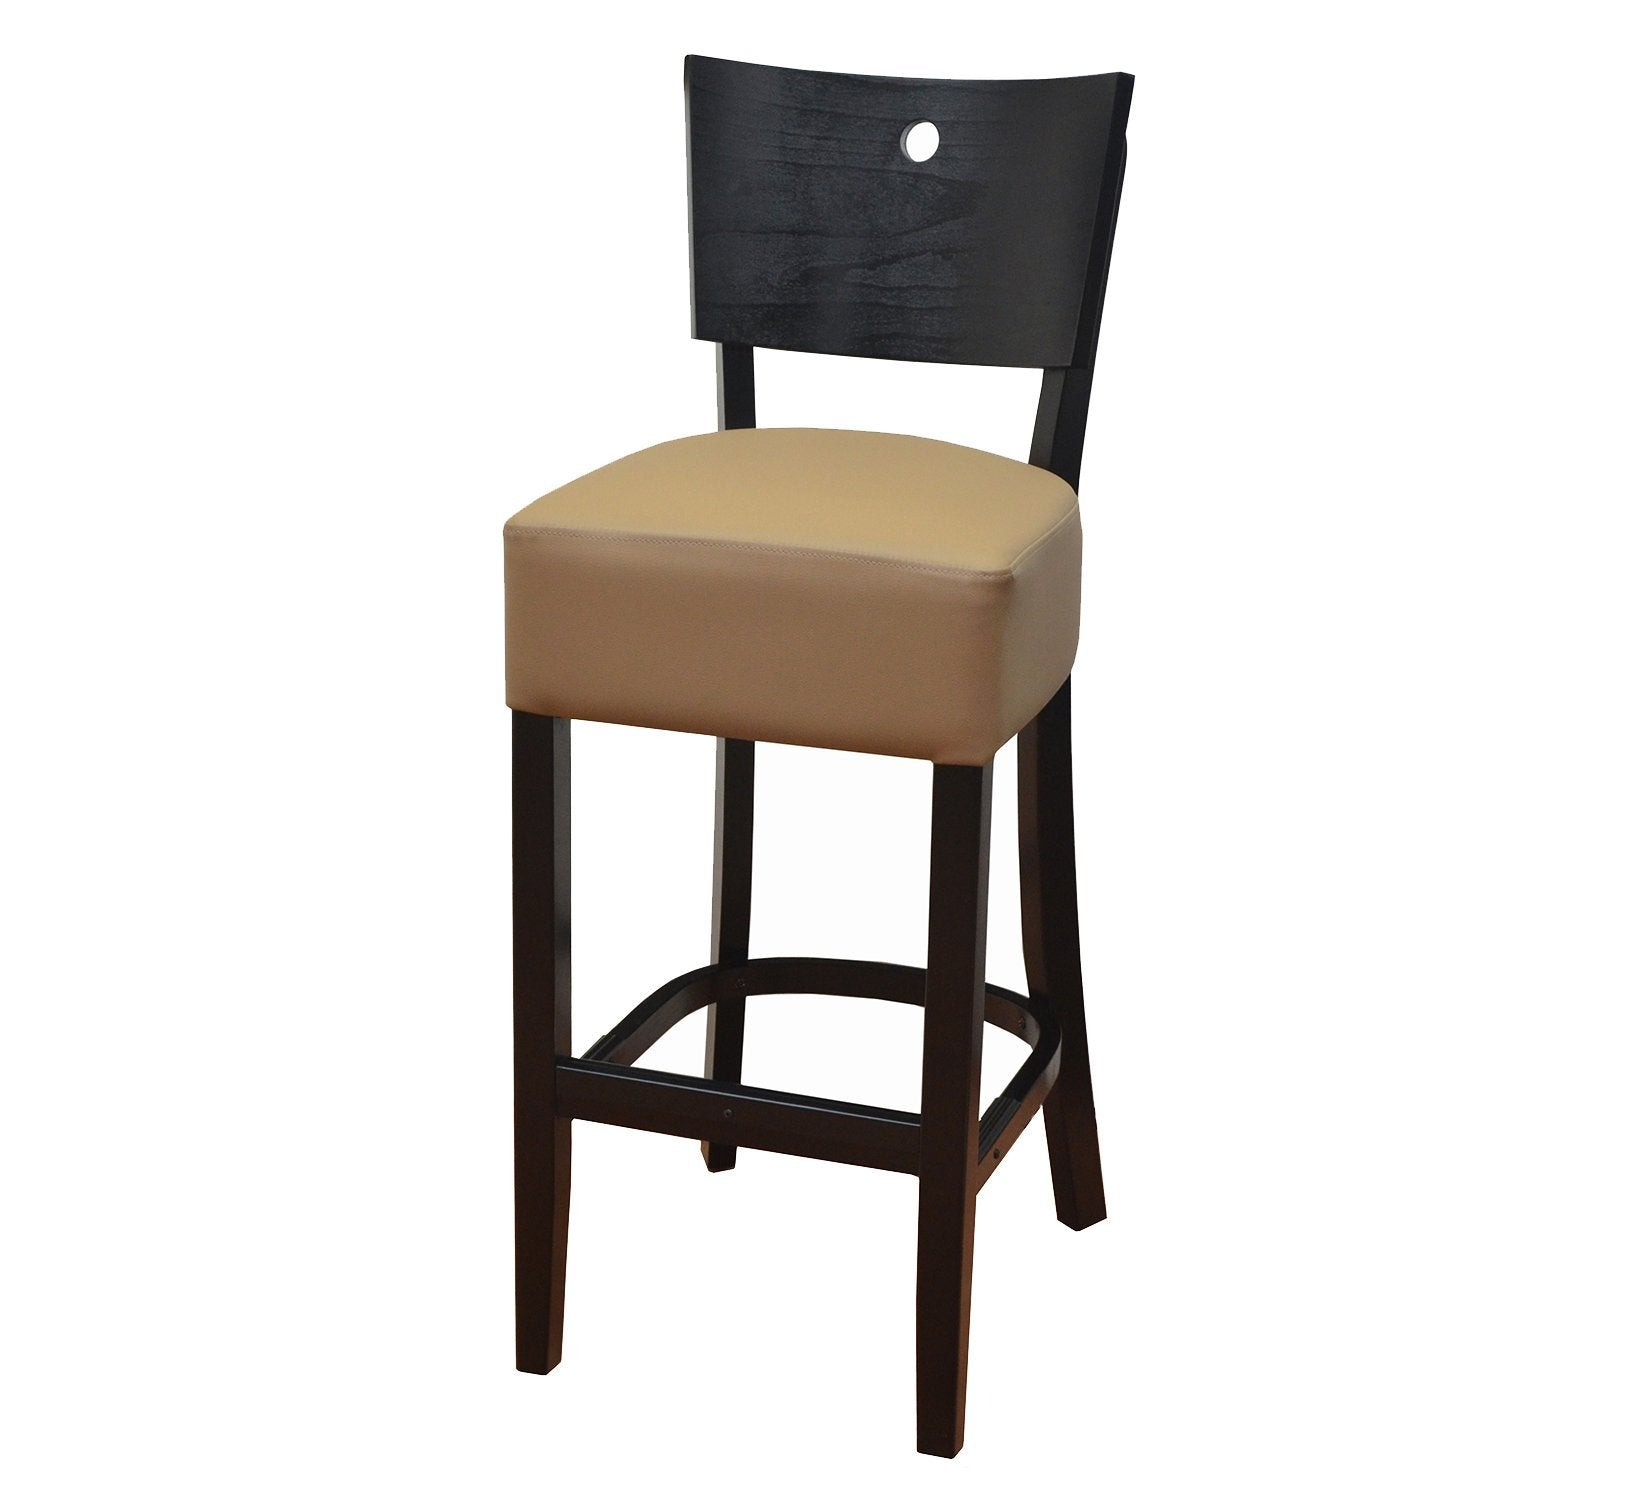 DHC 243B-BLK Black Finish, Designer Wood Barstool